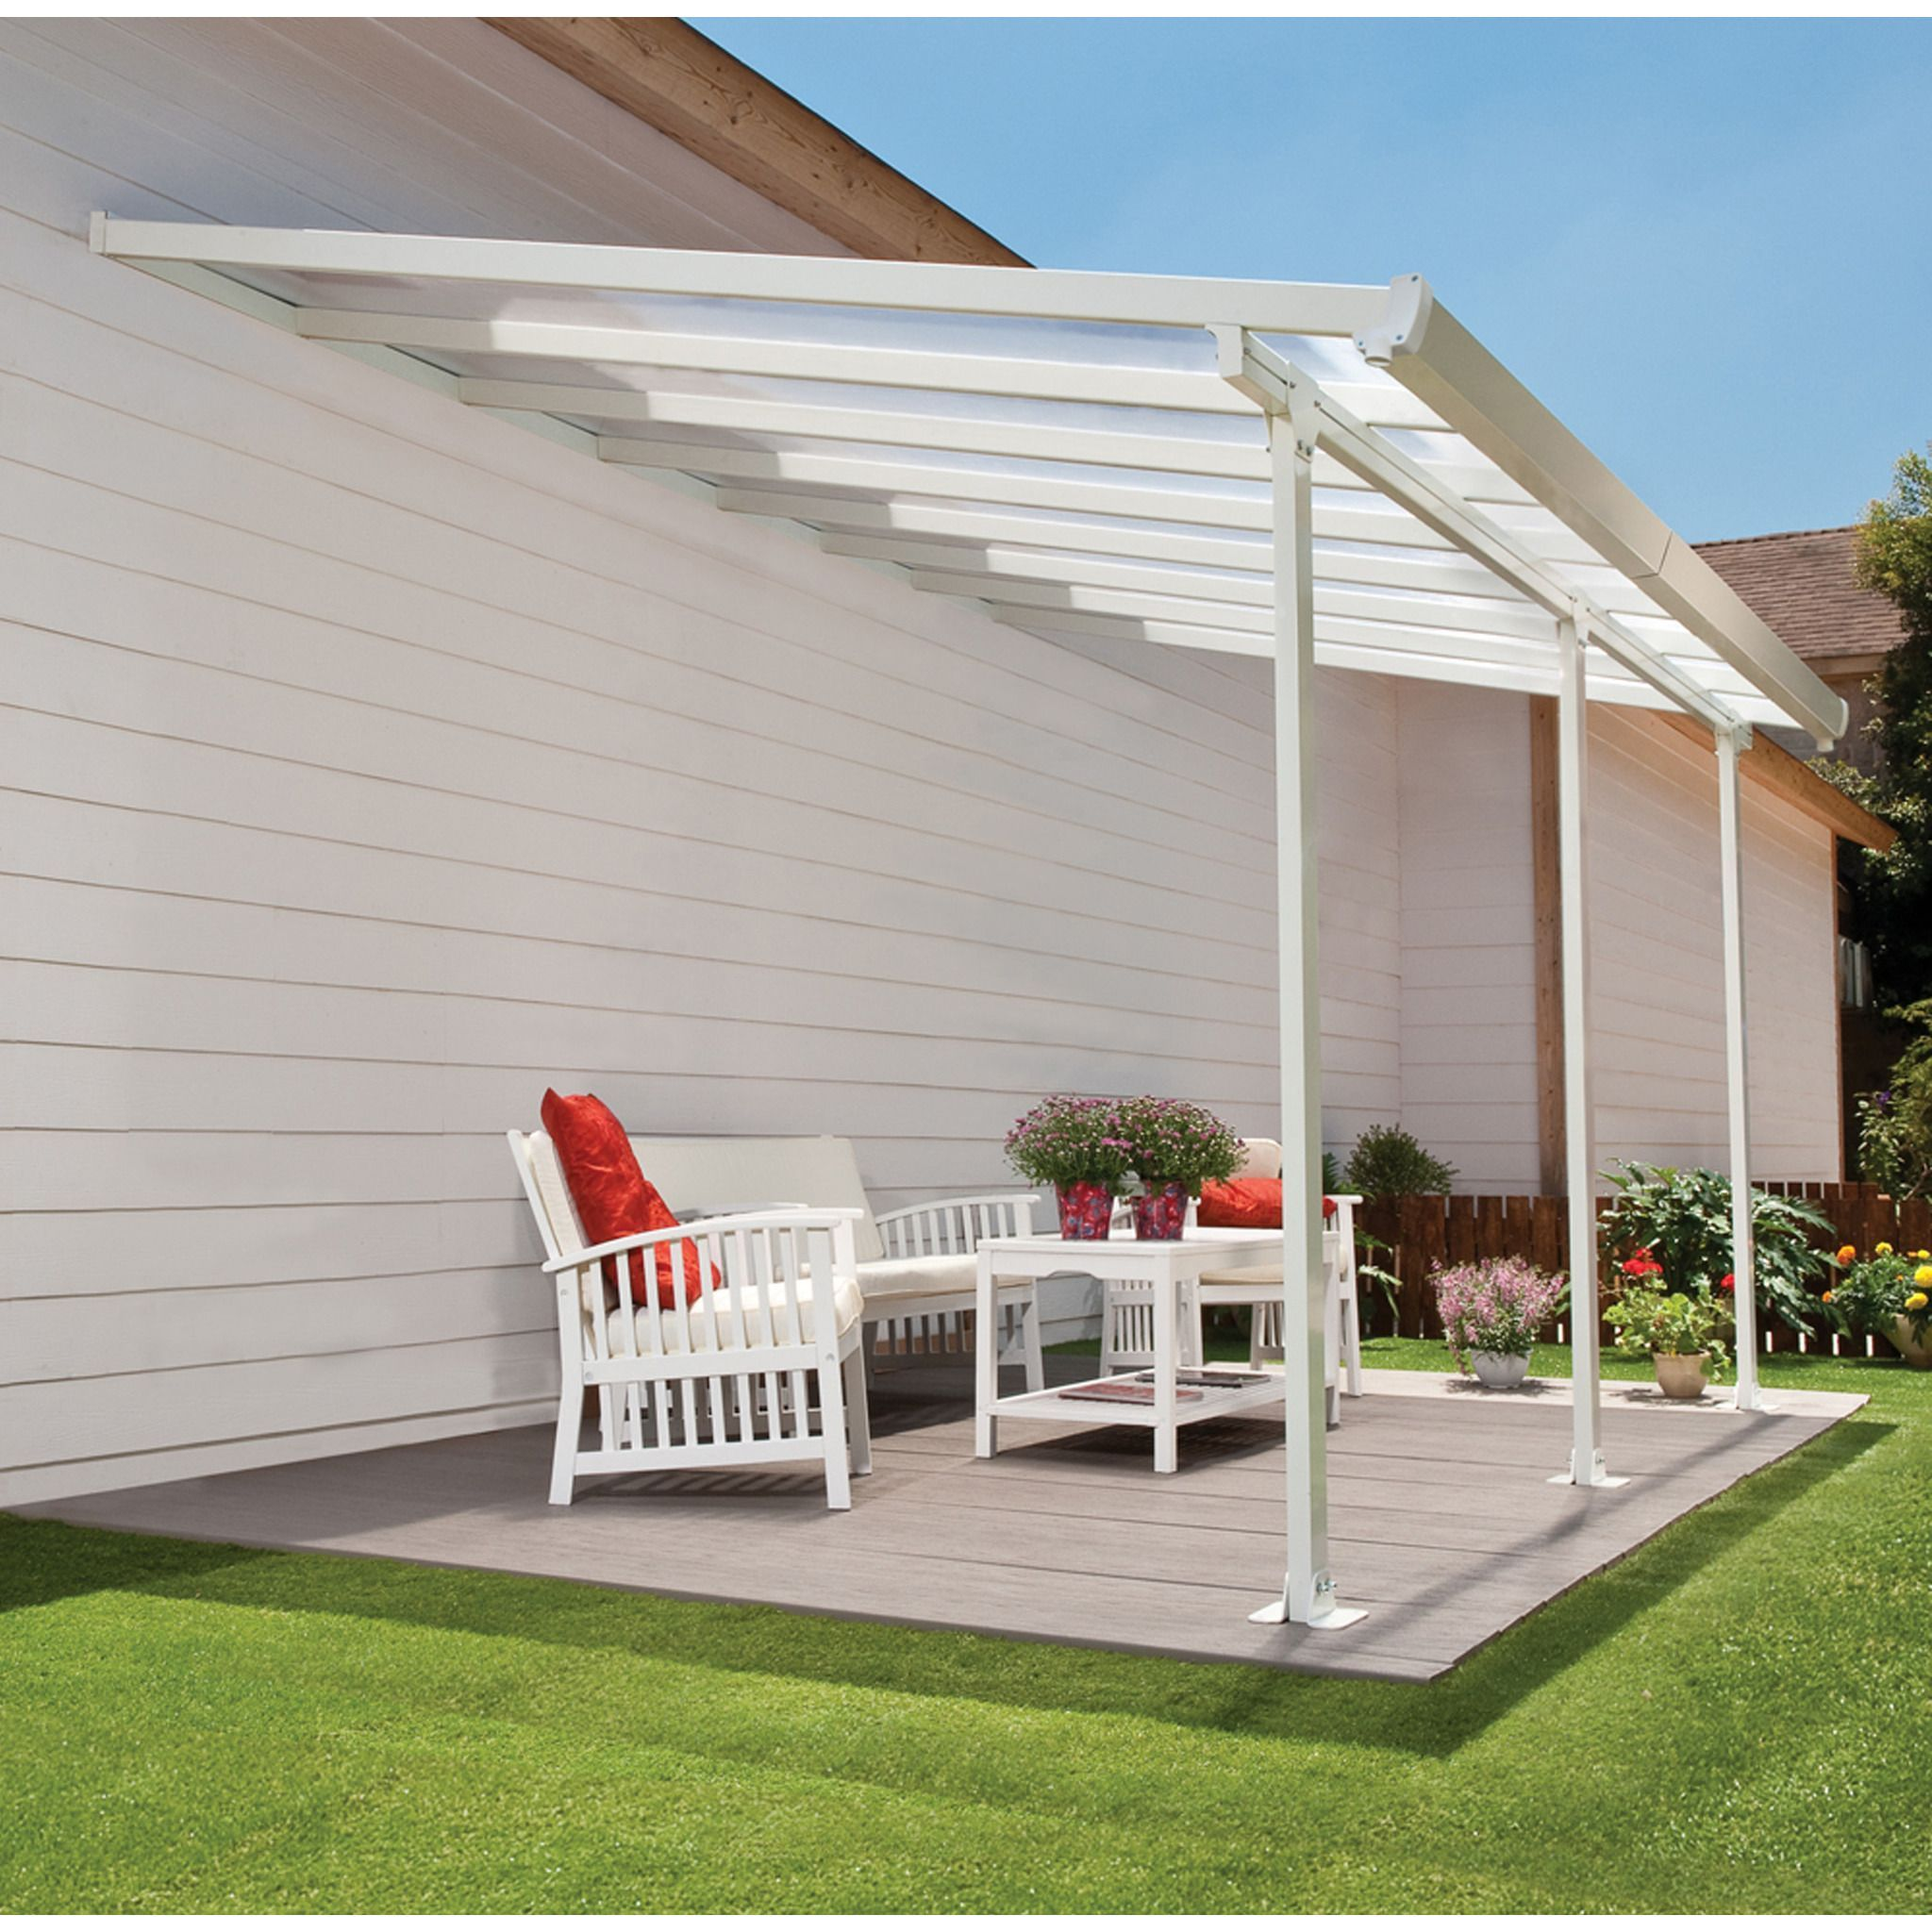 awnings everythingbeauty netting diy summary ideas installation deck awning cover mosquito home decks with for info